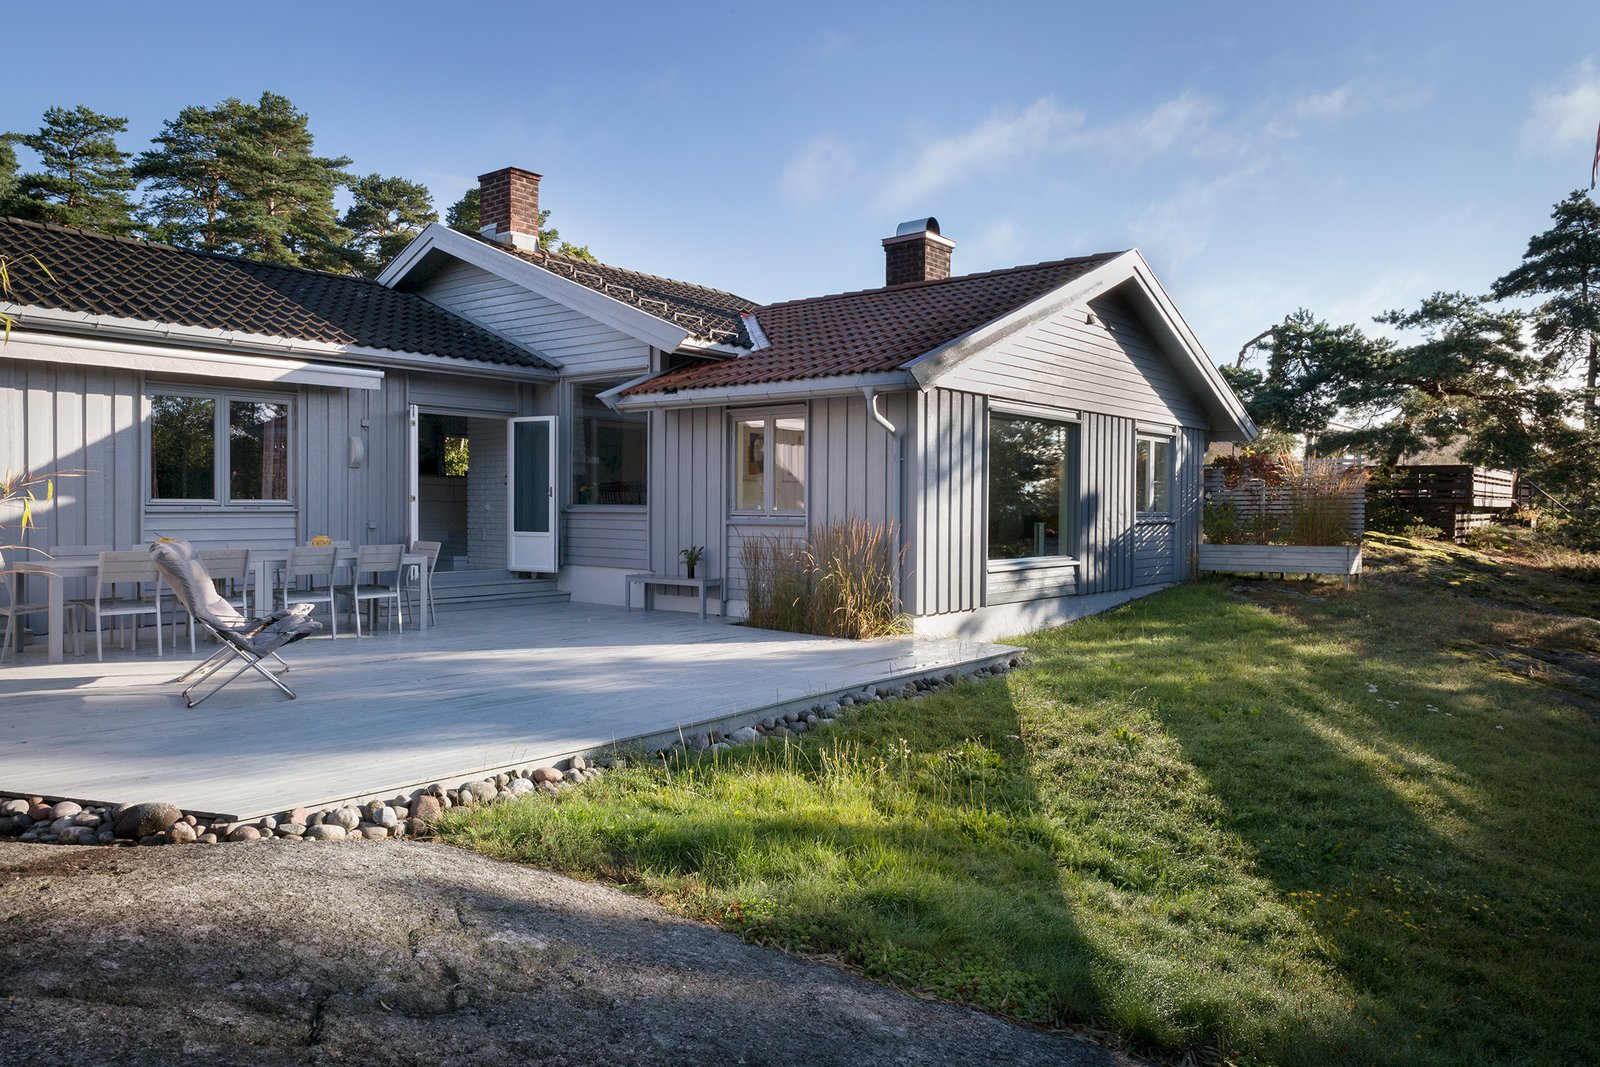 """Exterior, Wood Siding Material, House Building Type, Gable RoofLine, and Tile Roof Material Larvik architect Ulrik Hellum worked with the intention of creating harmony between architecture and natural environment.  Photo 1 of 13 in Relax and Recharge at This Charming Norwegian """"Hytte"""" Rental"""